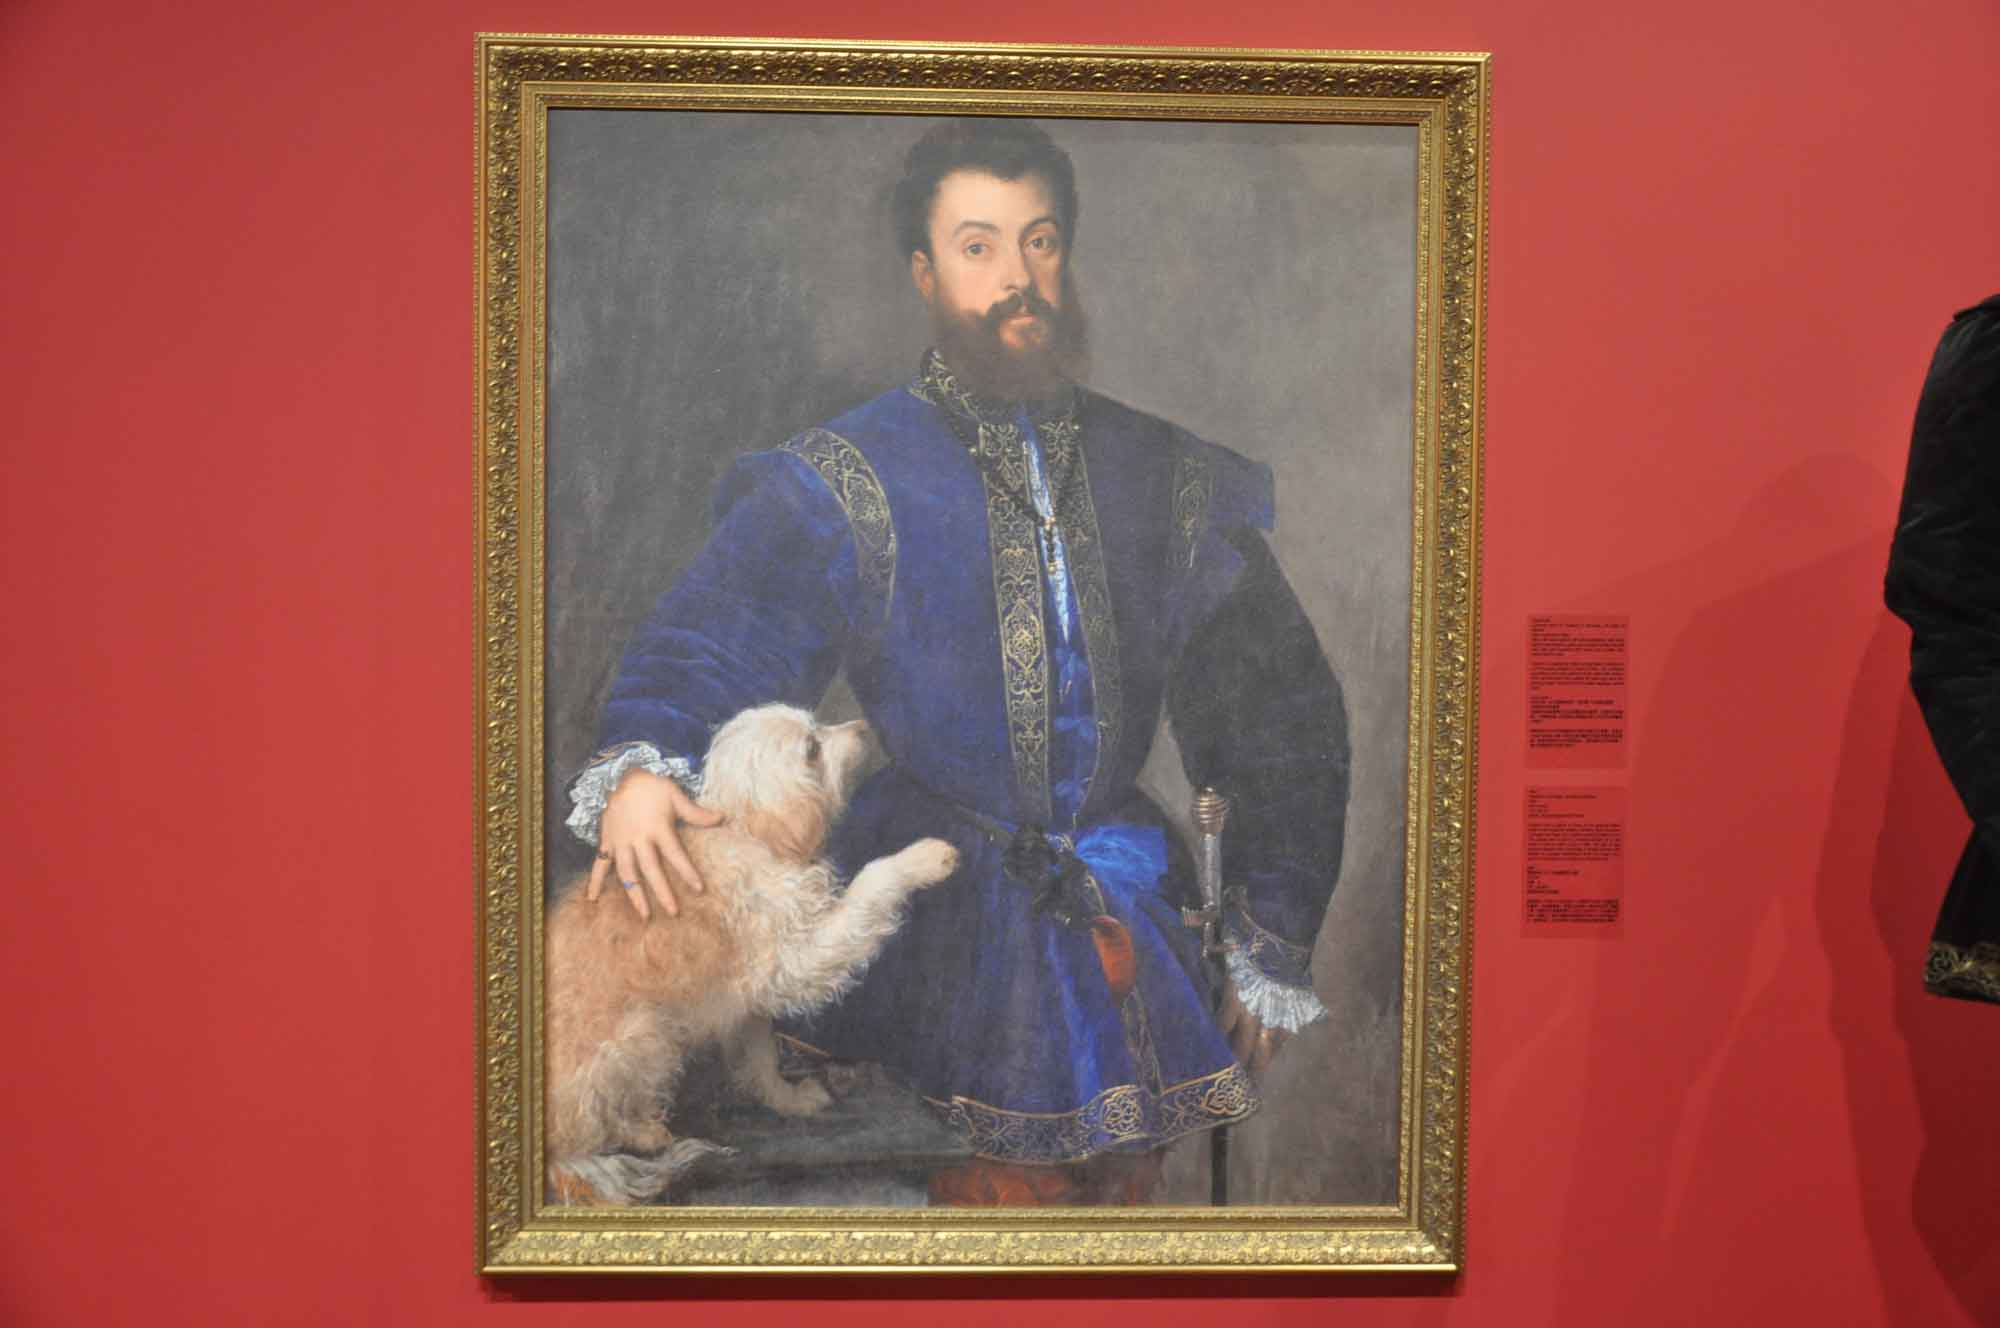 Duke of Mantua - Titian